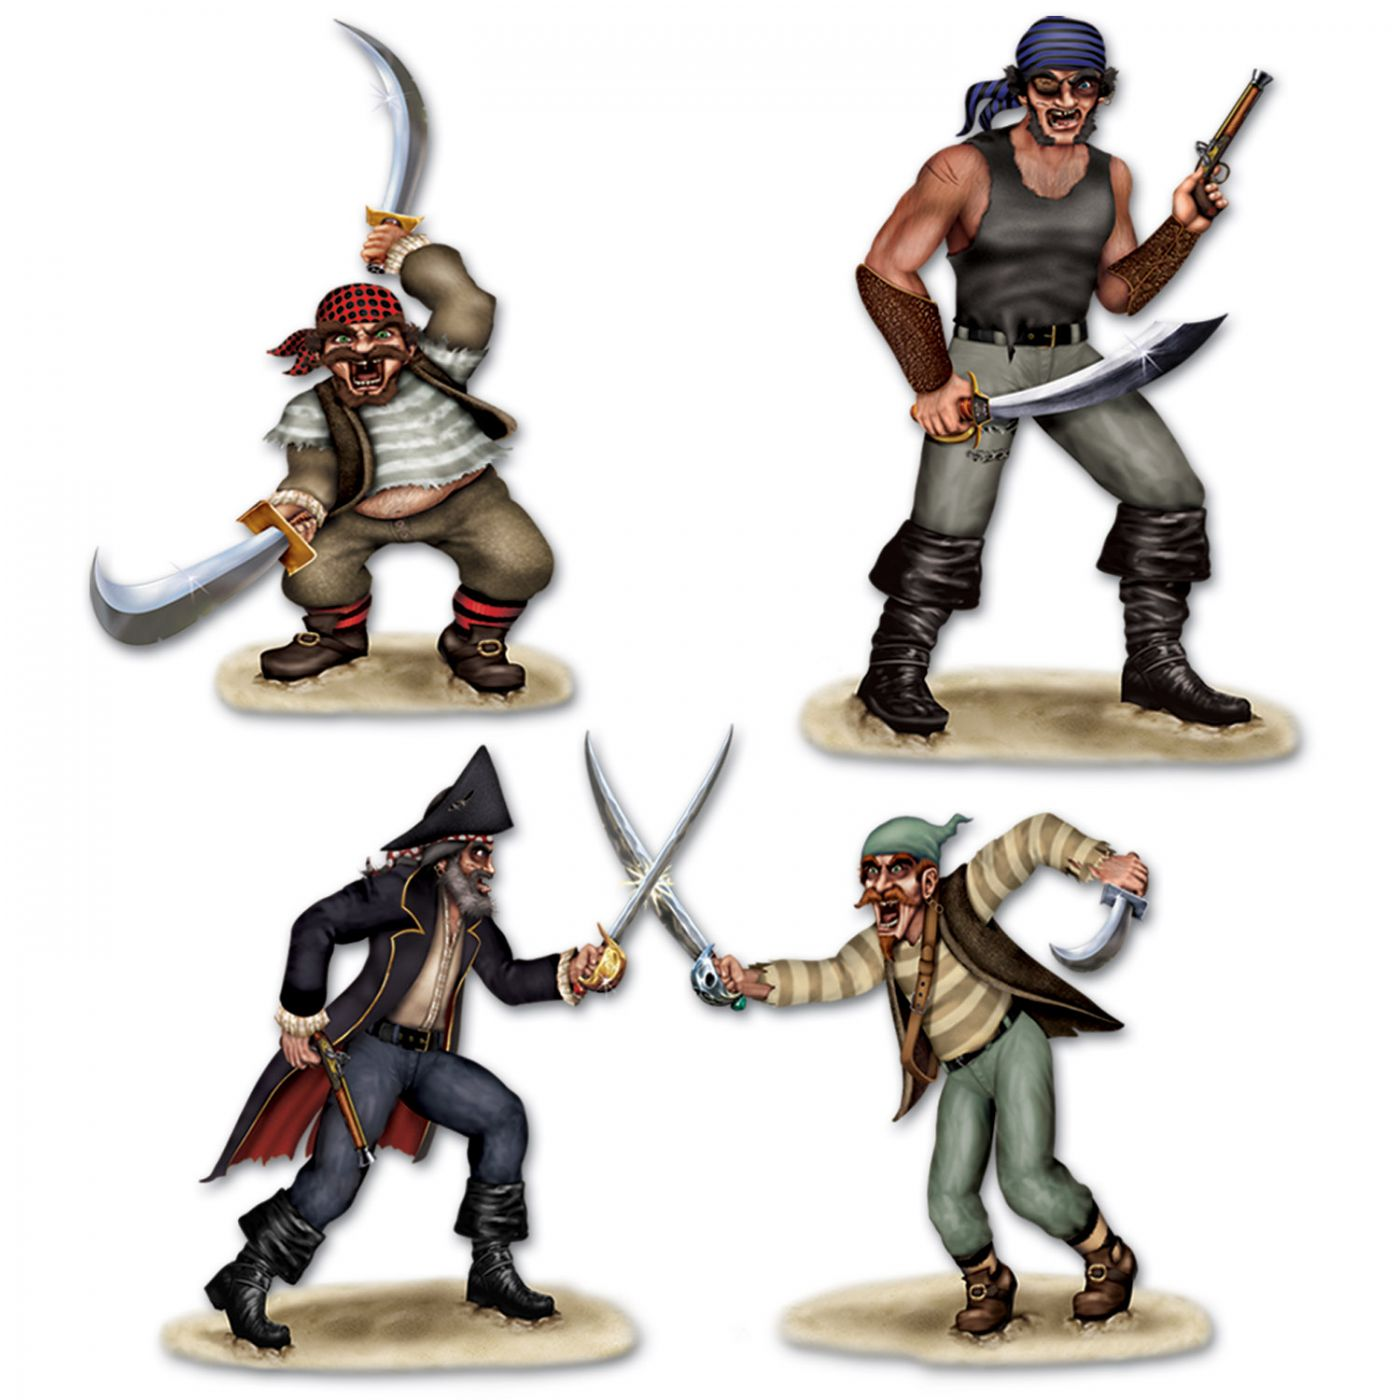 Dueling Pirate & Bandit Props image